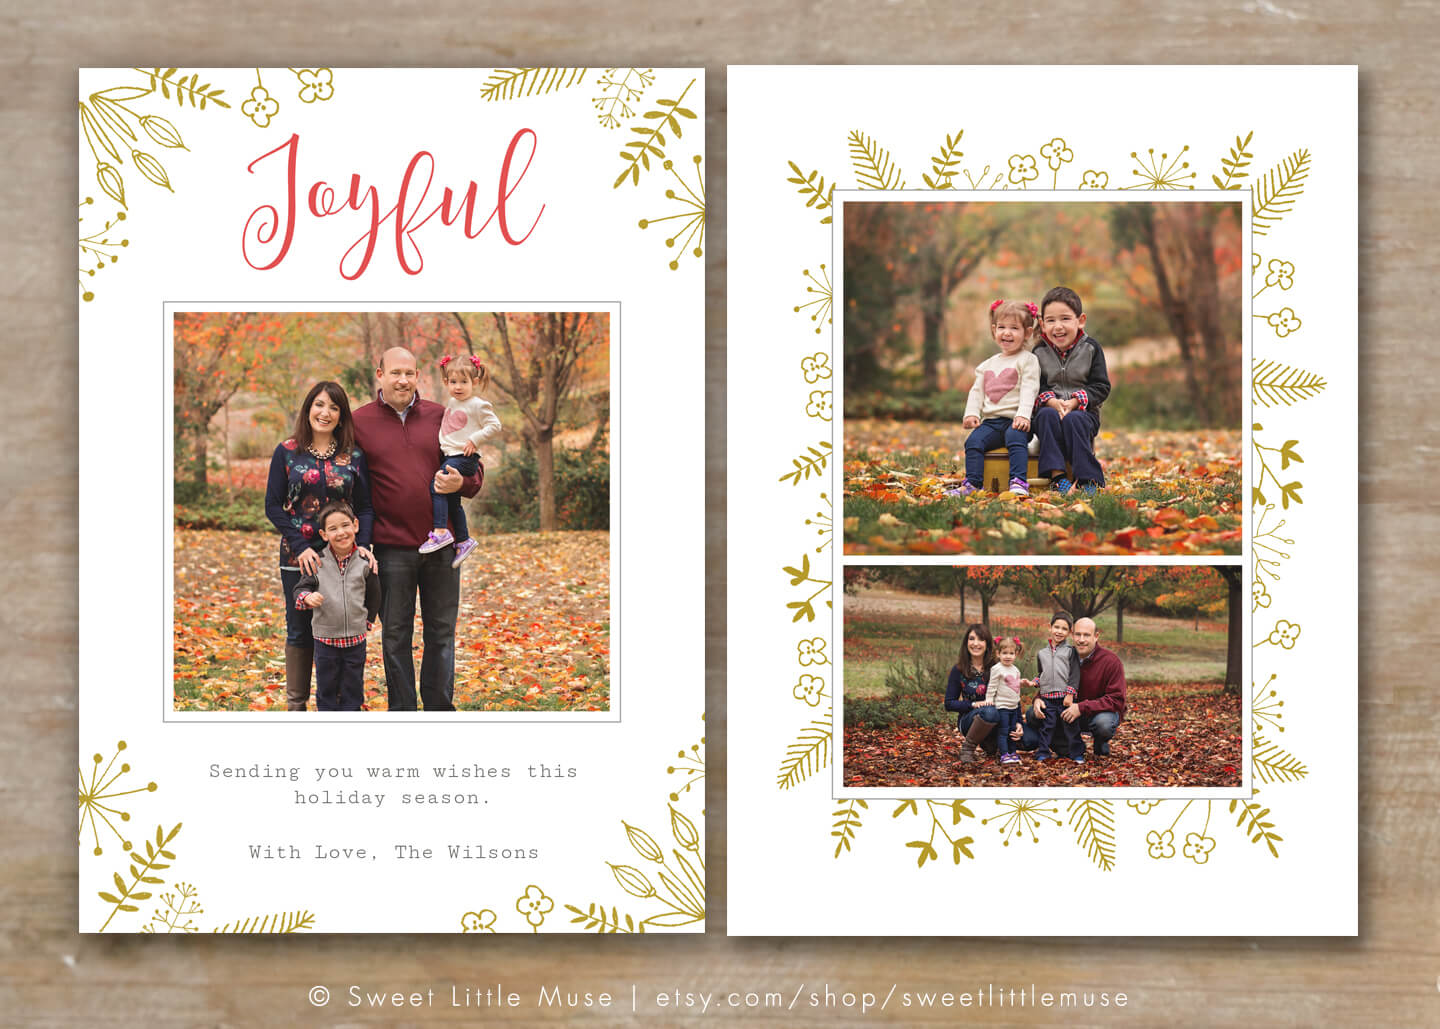 30 Holiday Card Templates For Photographers To Use This Year Intended For Holiday Card Templates For Photographers